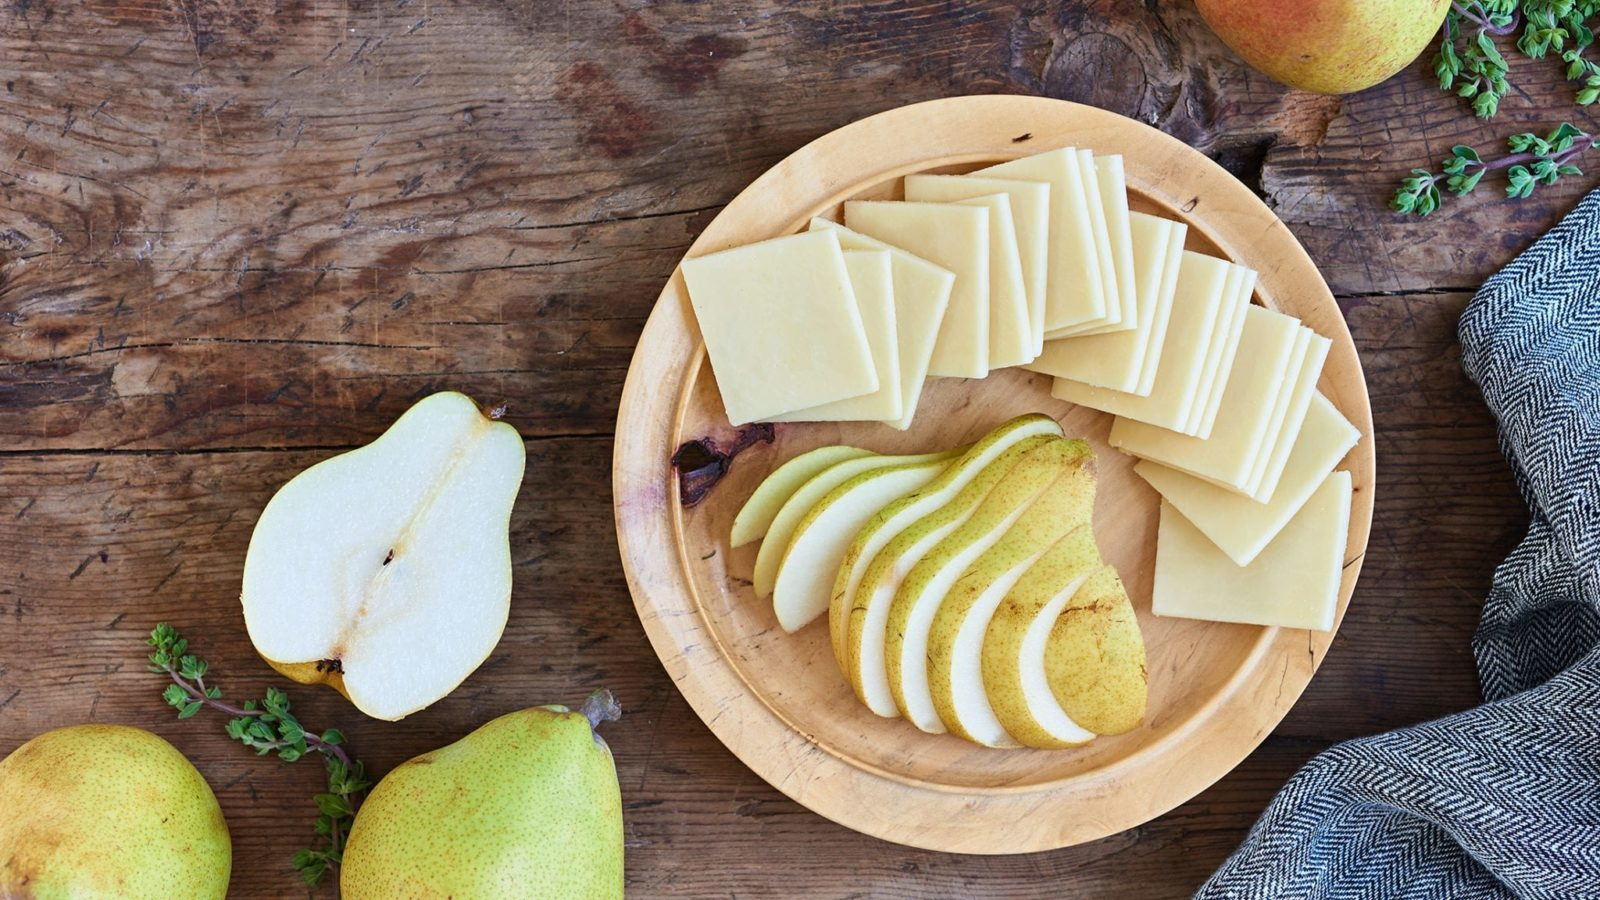 Comice Pear with Vermont Sharp Cheddar